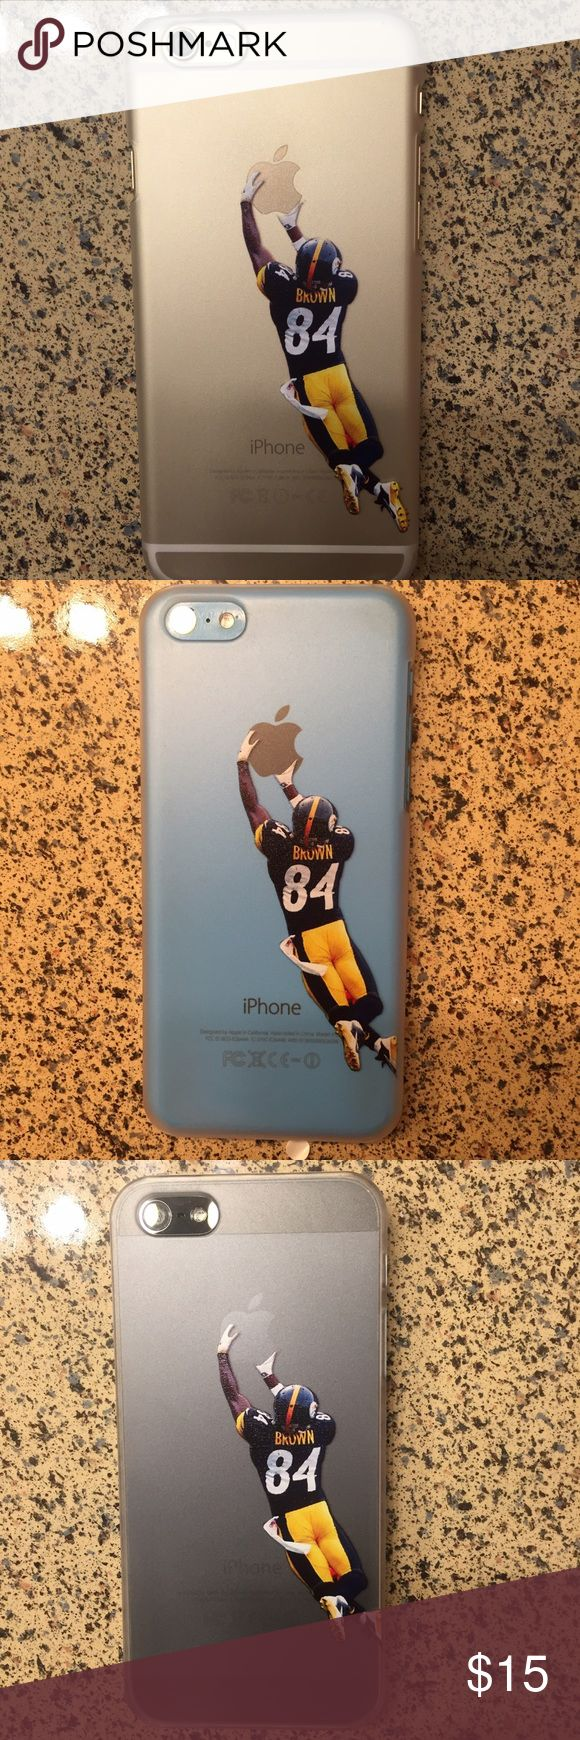 Antonio Brown Steelers iPhone case New iPhone Antonio Brown semi transparent plastic shell case with printed image not a sticker Different sizes available Jordan Accessories Phone Cases